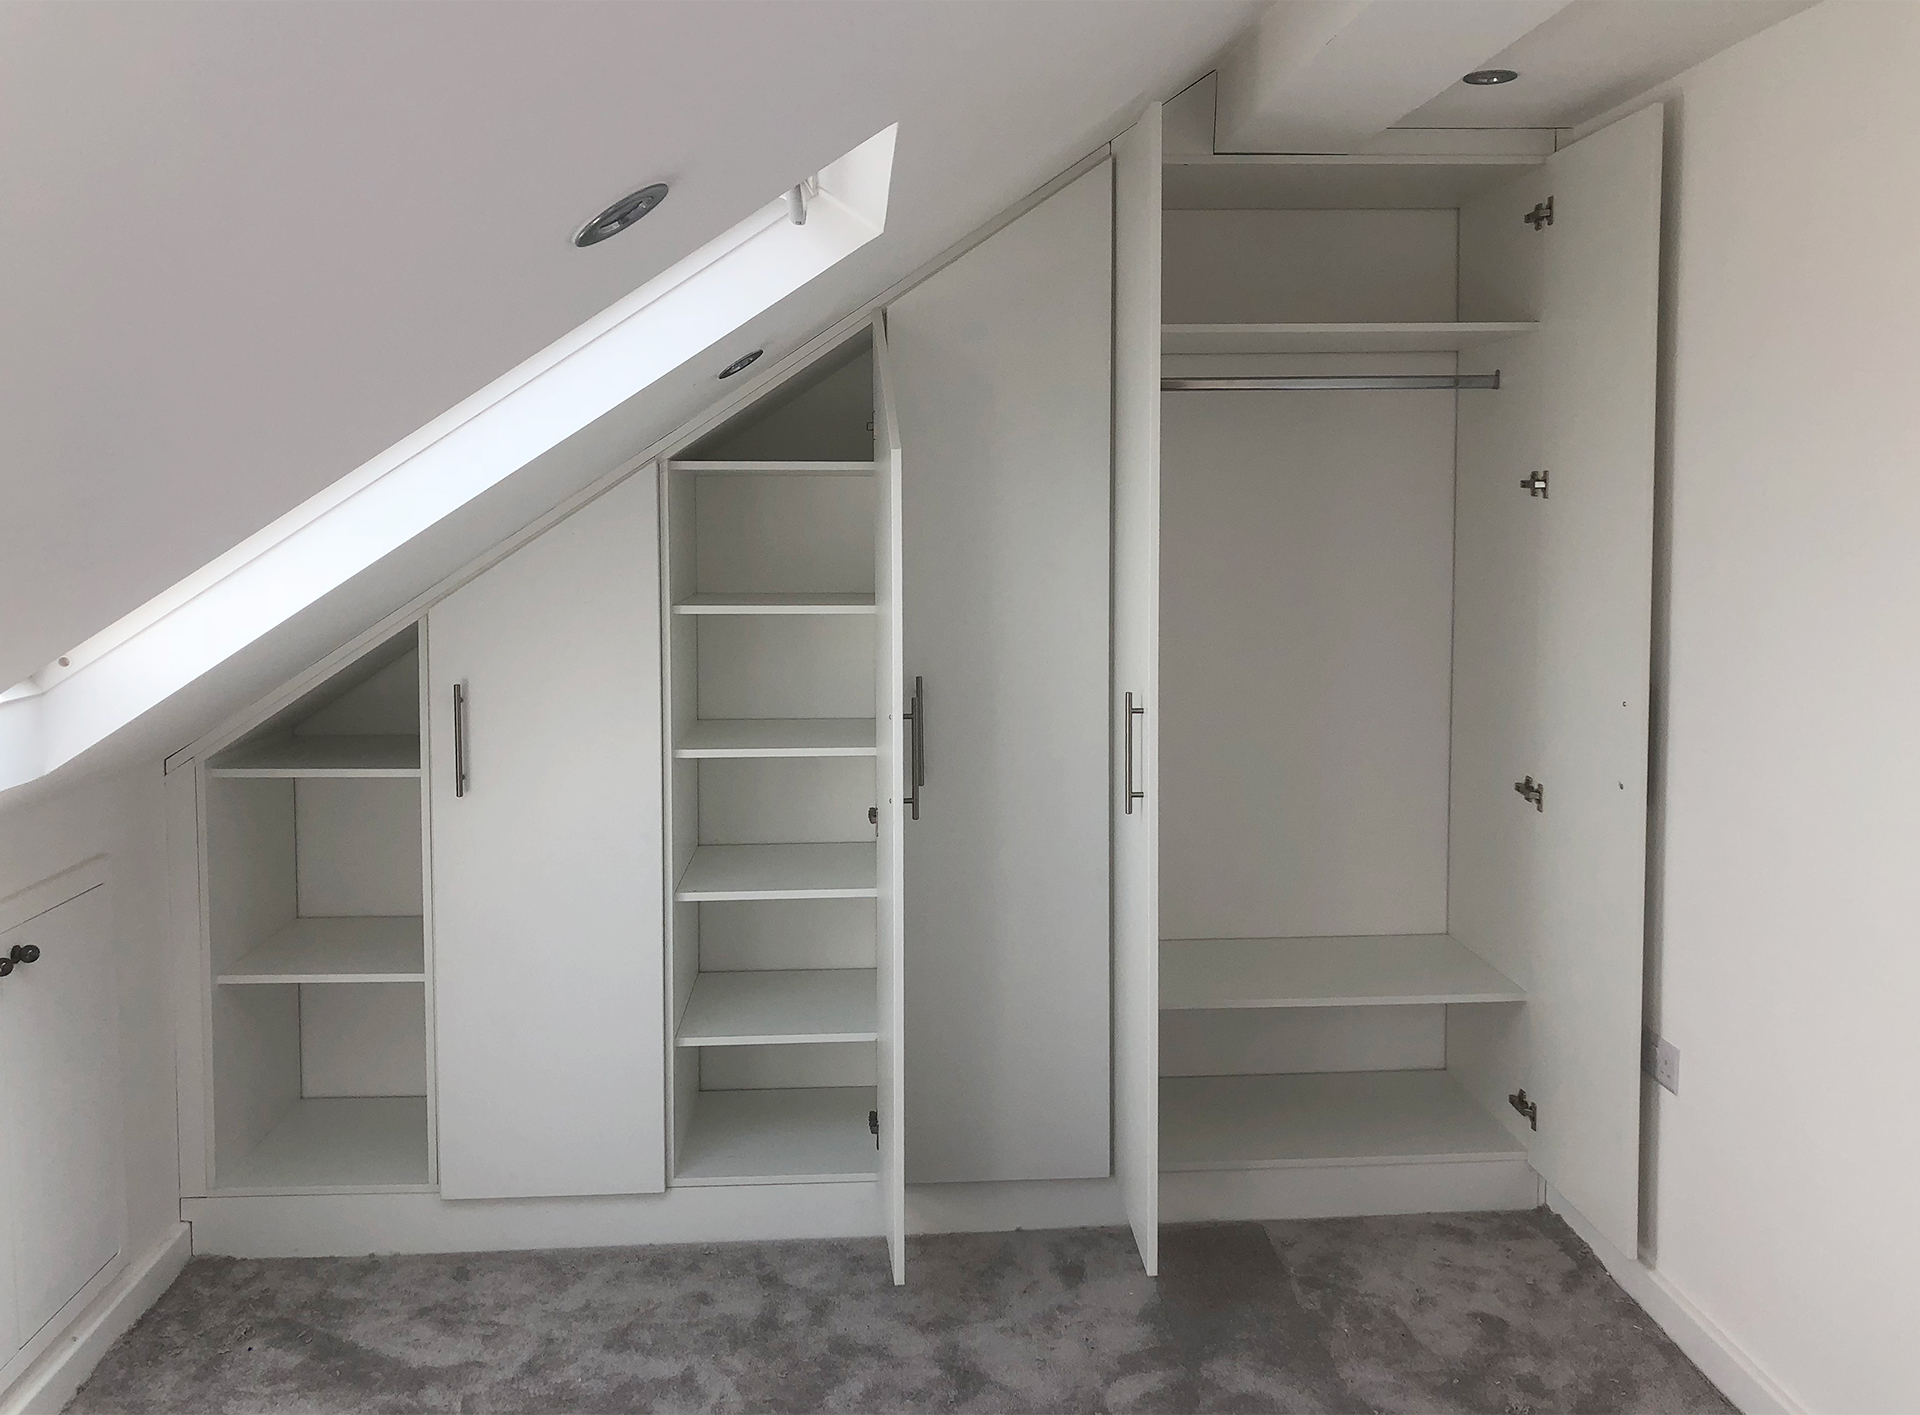 Bespoke Furniture Fitted Wardrobes In The Loft